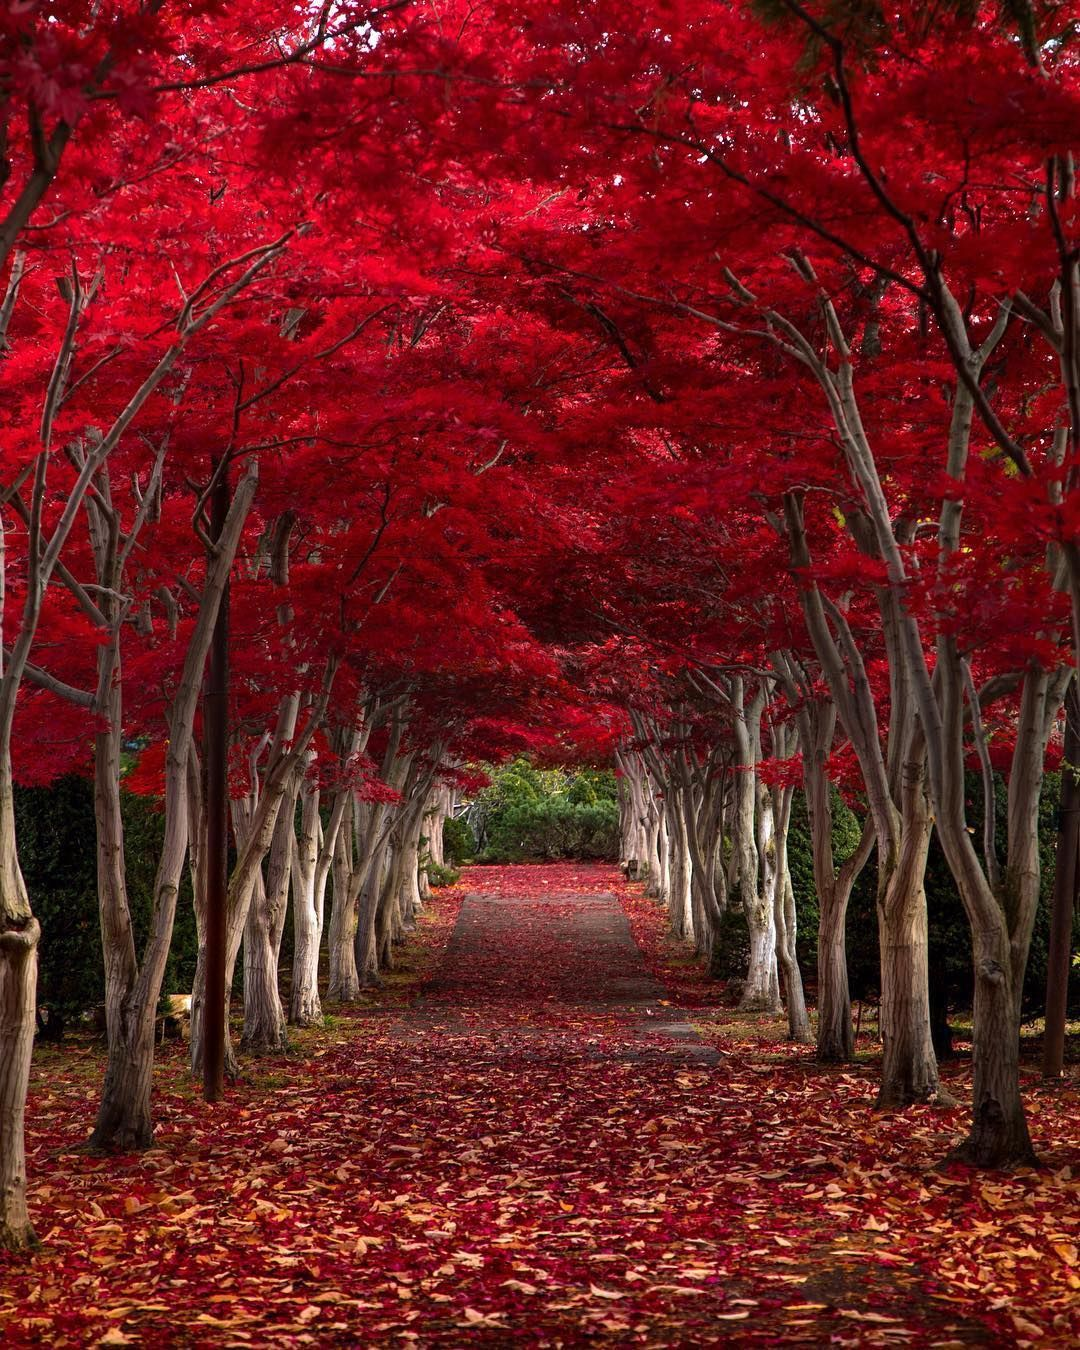 The Crimsonforest A Romantic Enchanted Forest Perfect For Valentine S Day Location Hokkaido Repost Haya Natural Wonders Beautiful Tree Scenery